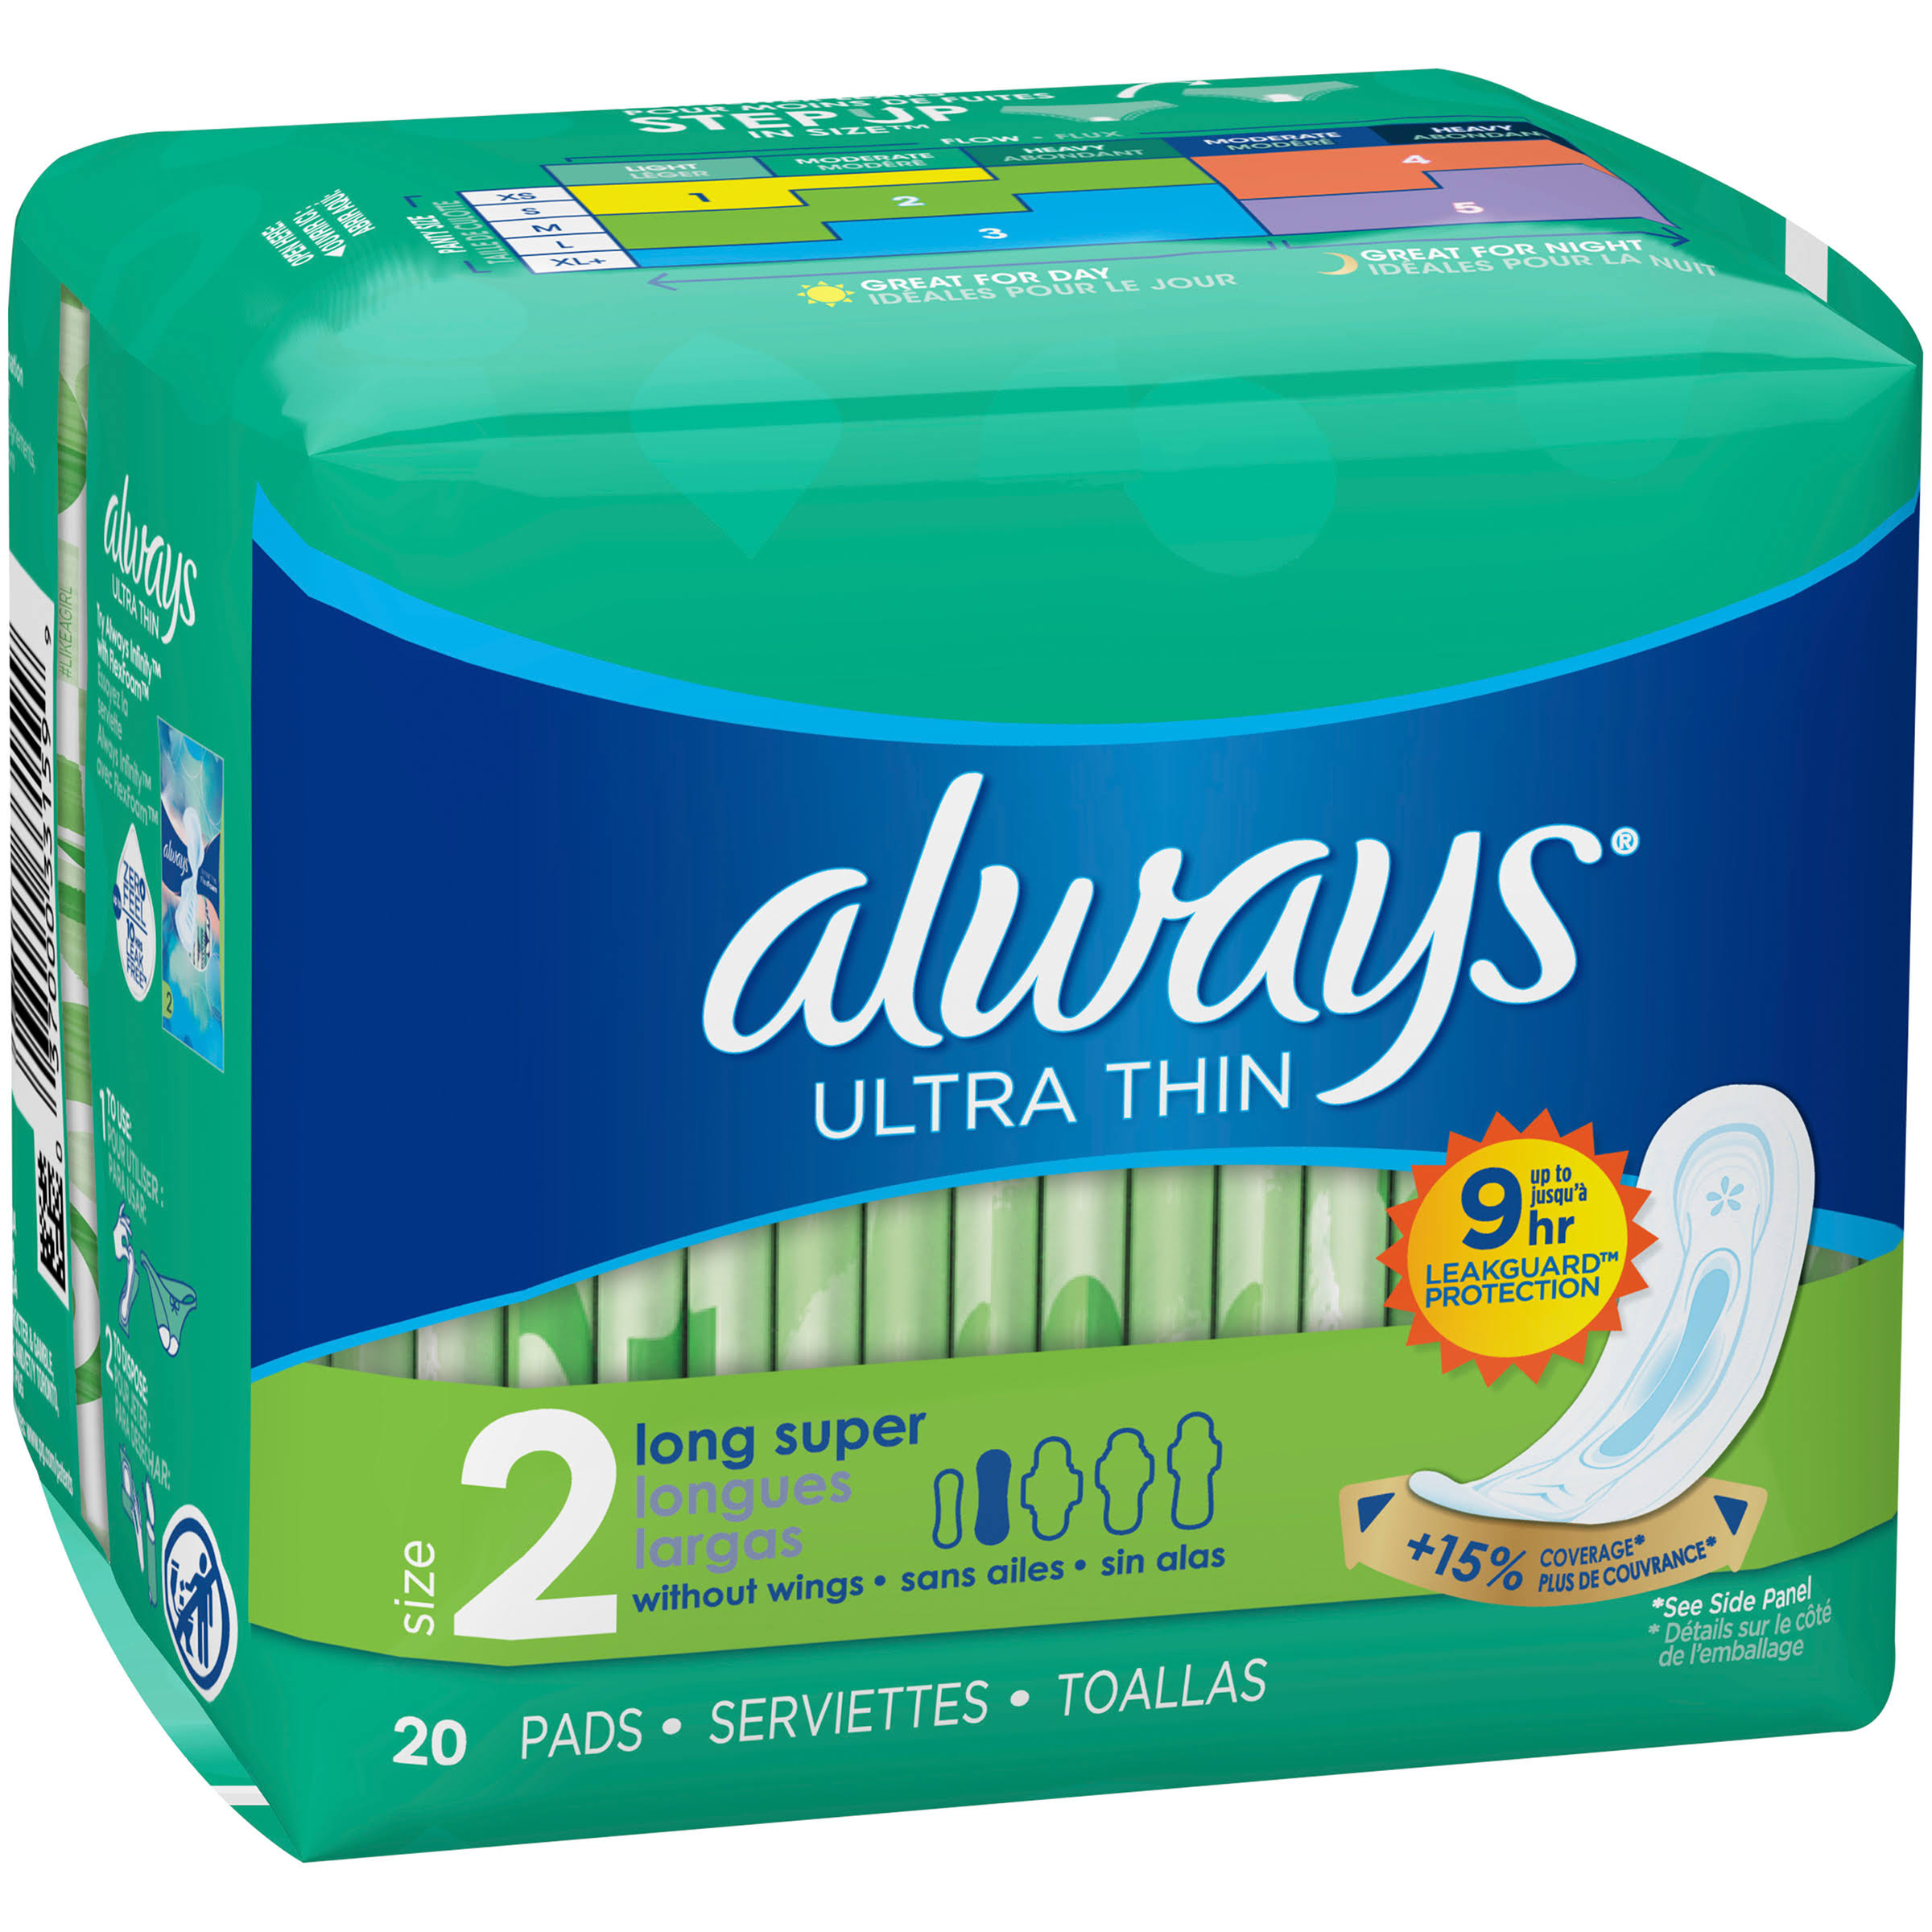 Always Pads - 20 Pads, Ultra Thin, Super Long